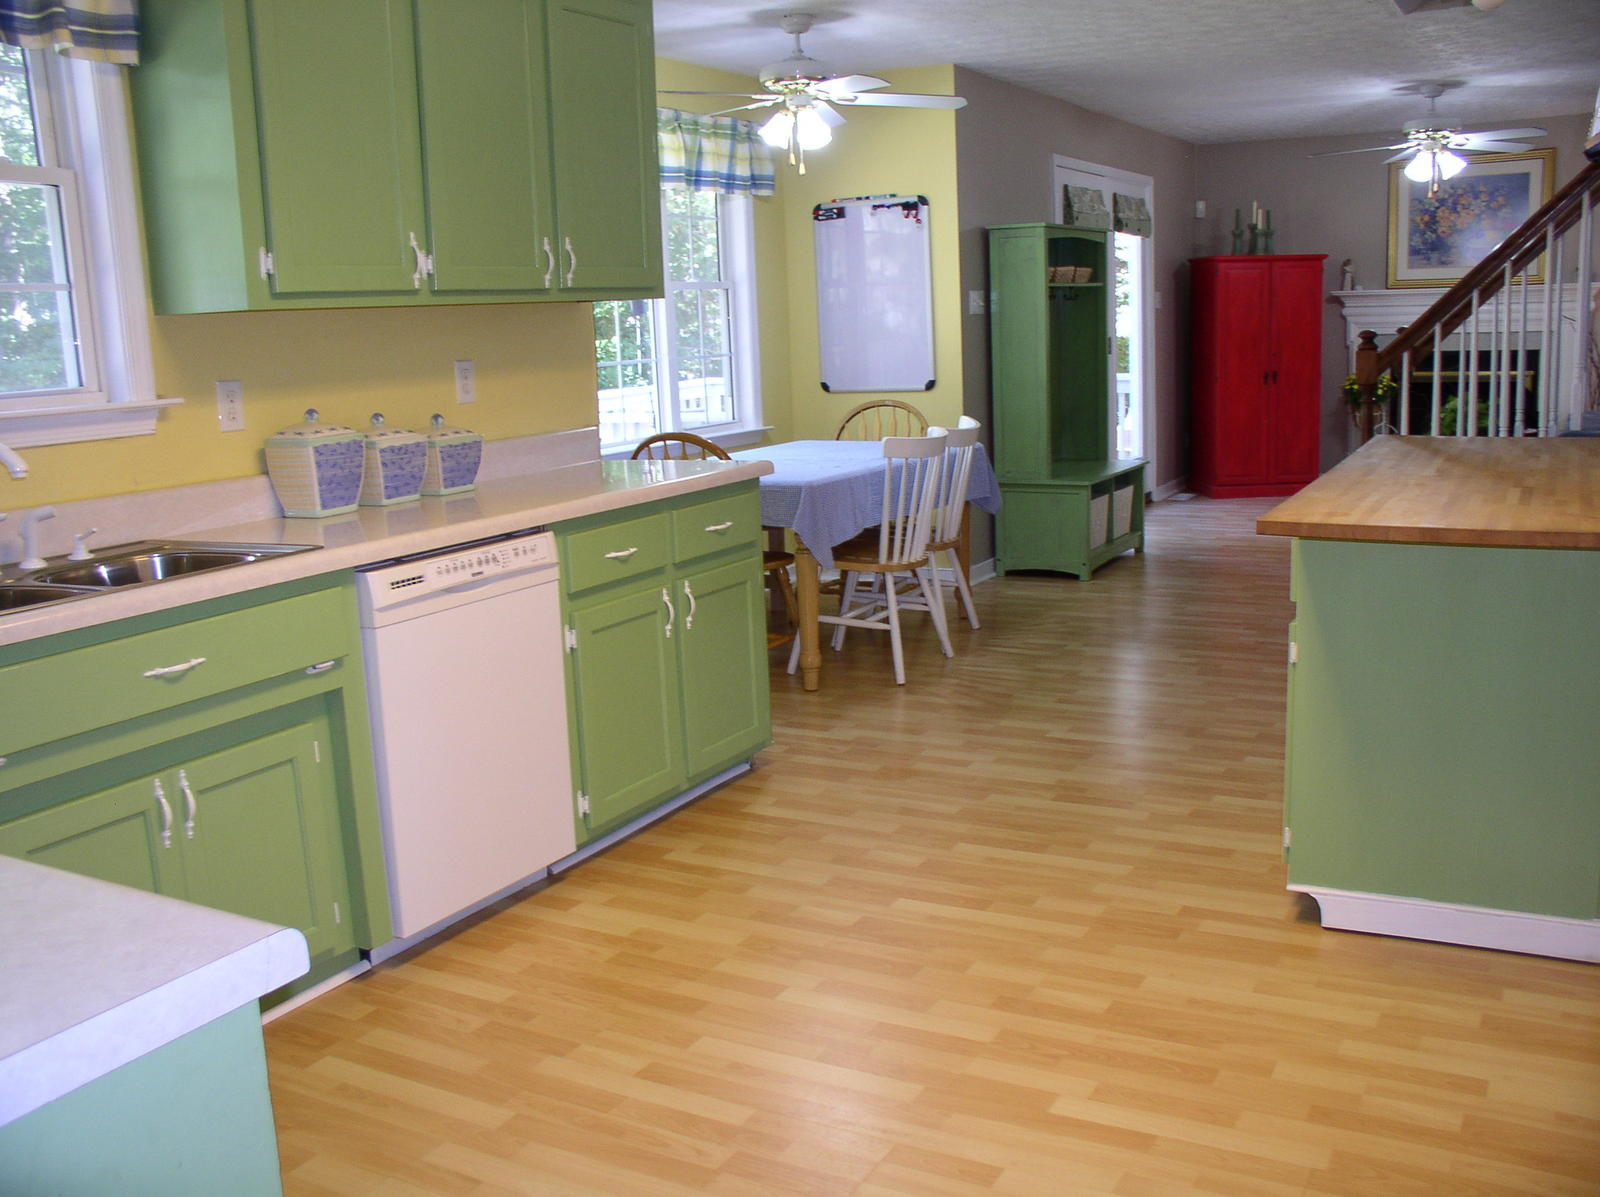 Painting your kitchen cabinets painting tips from the pros for Kitchen ideas paint